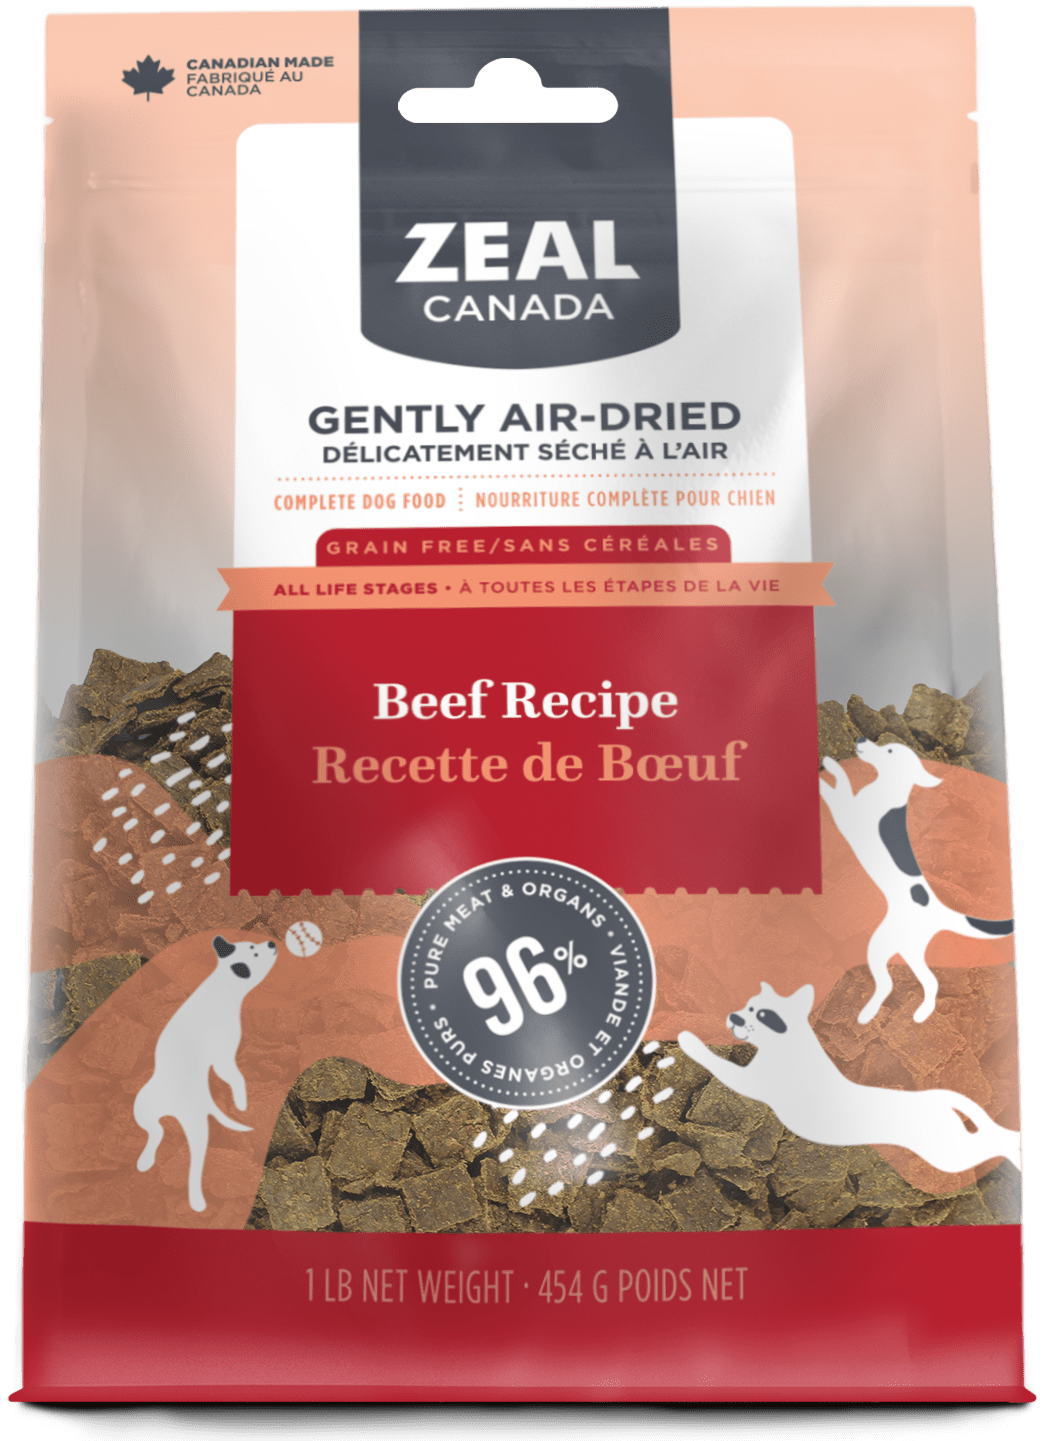 product image for Gently Air-Dried Beef for Dogs